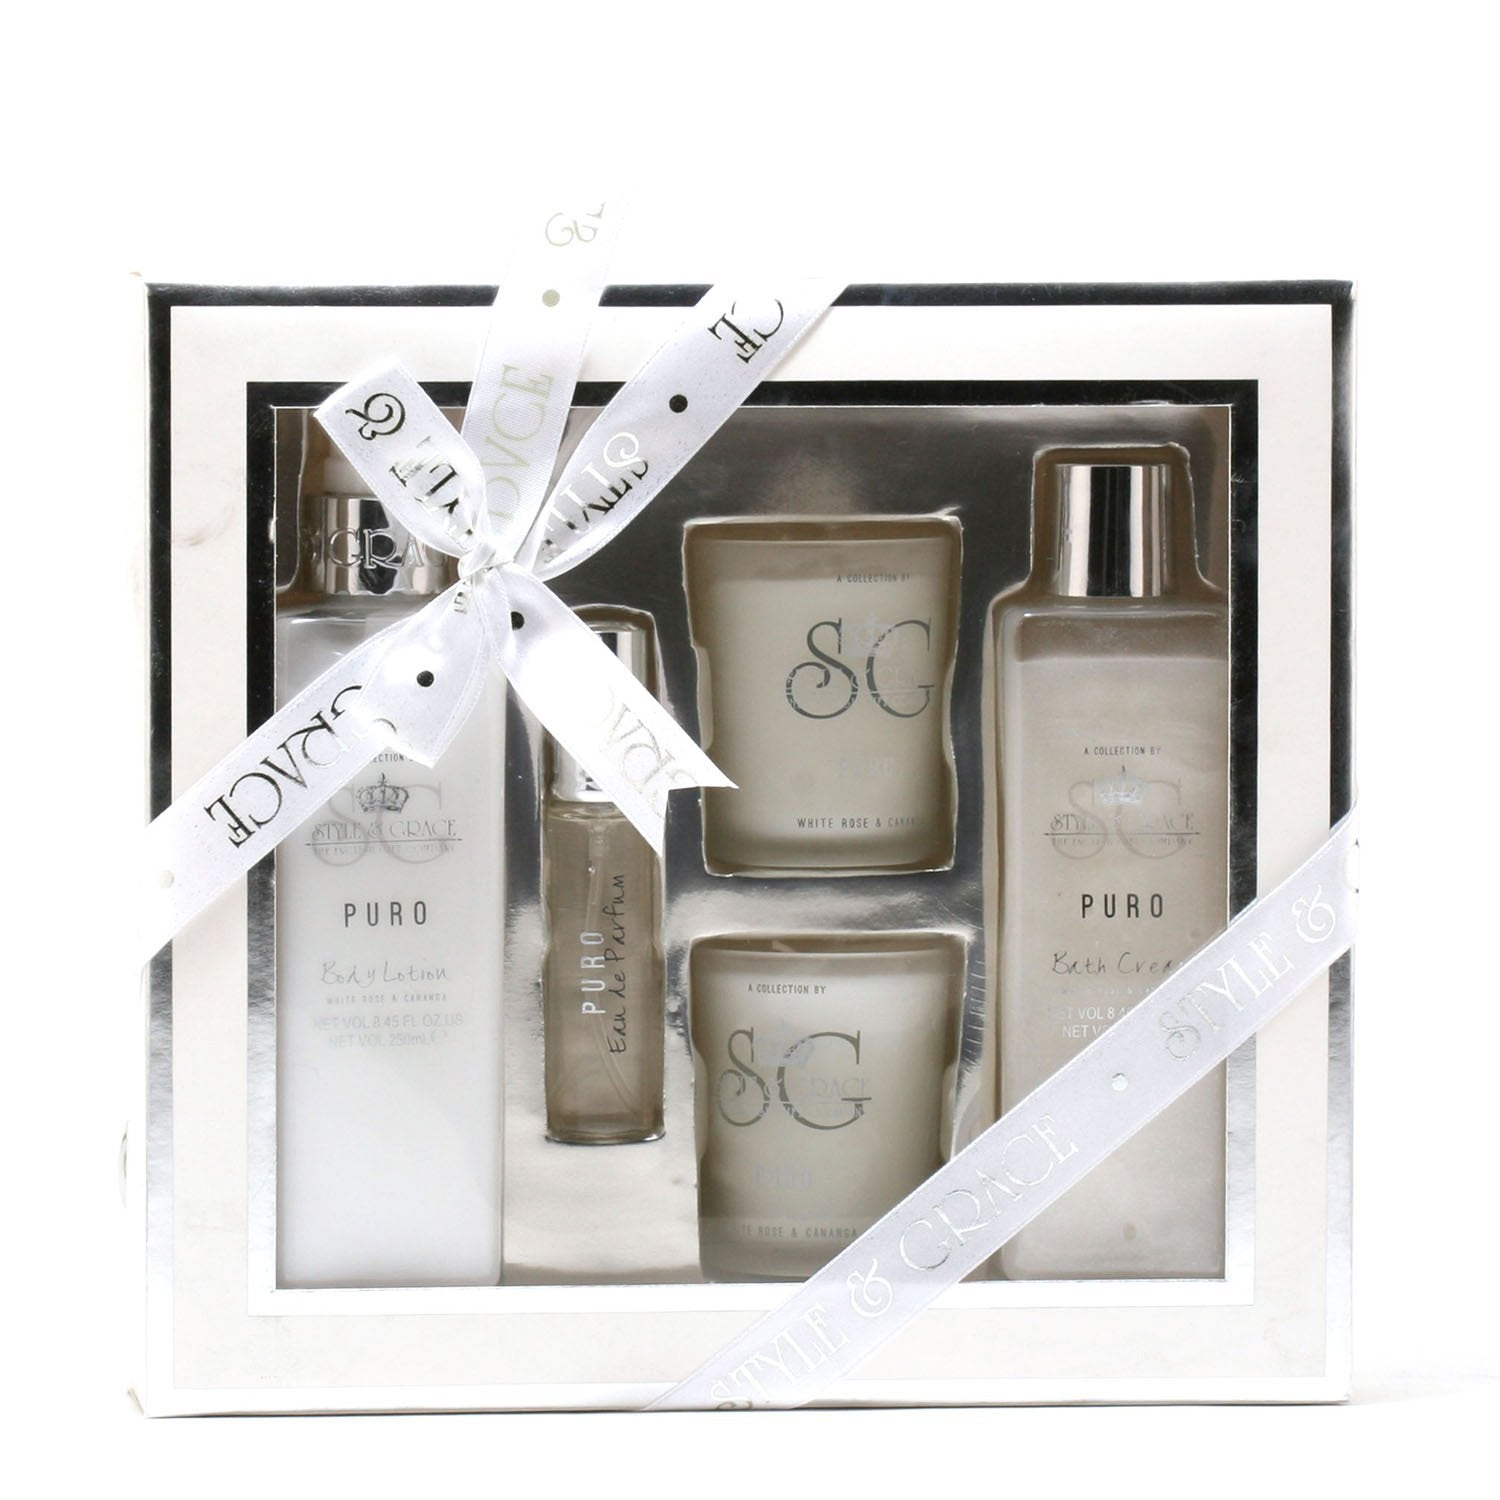 Bath And Body - PURO TRANQUIL BY STYLE & GRACE - BATH EXPERIENCE GIFT SET